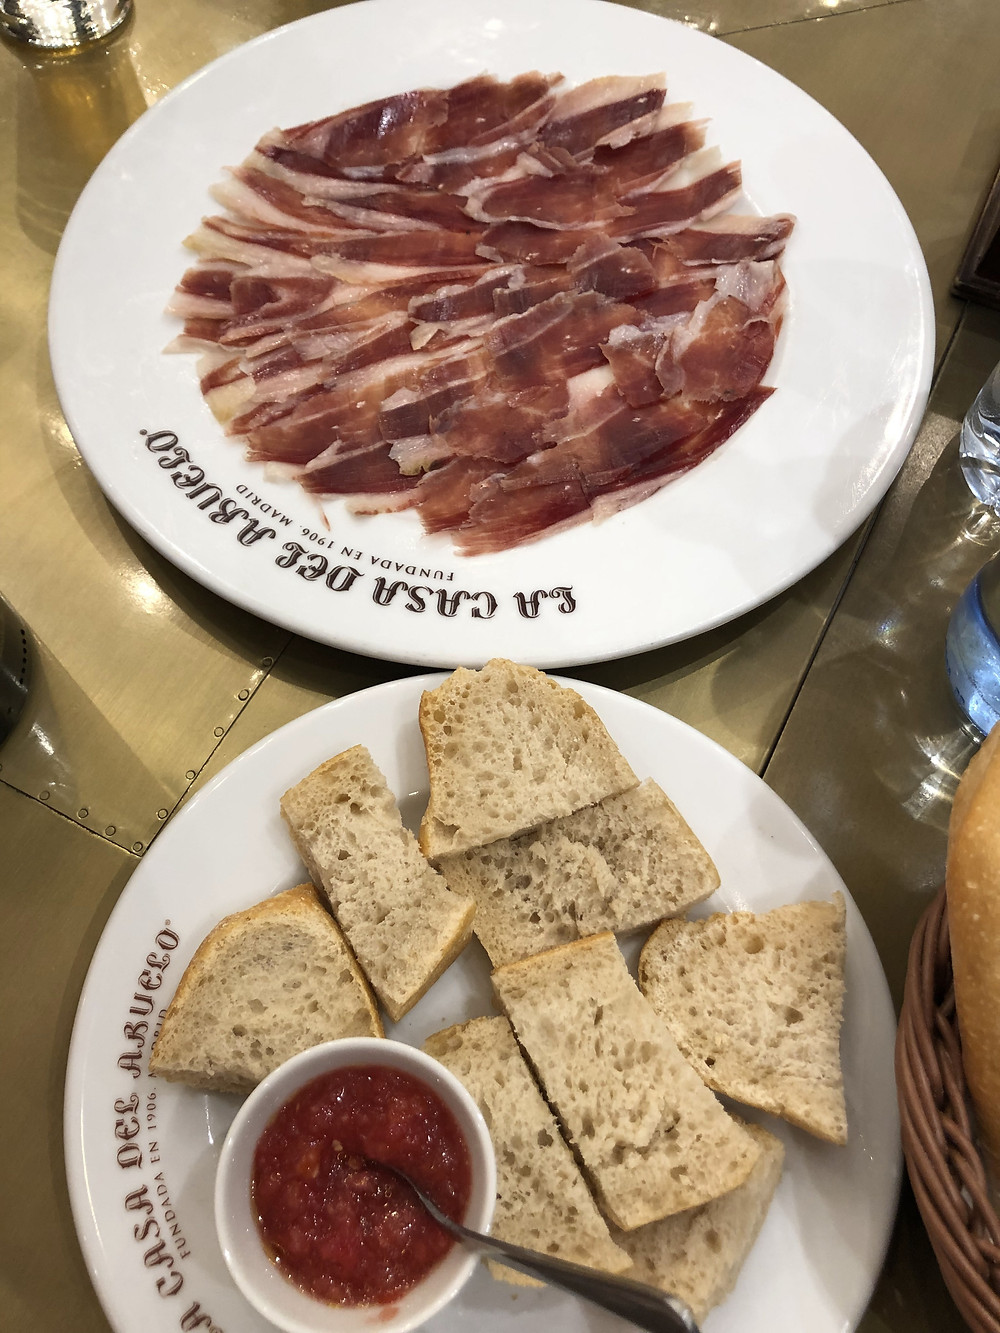 Jamon with pan con tomate